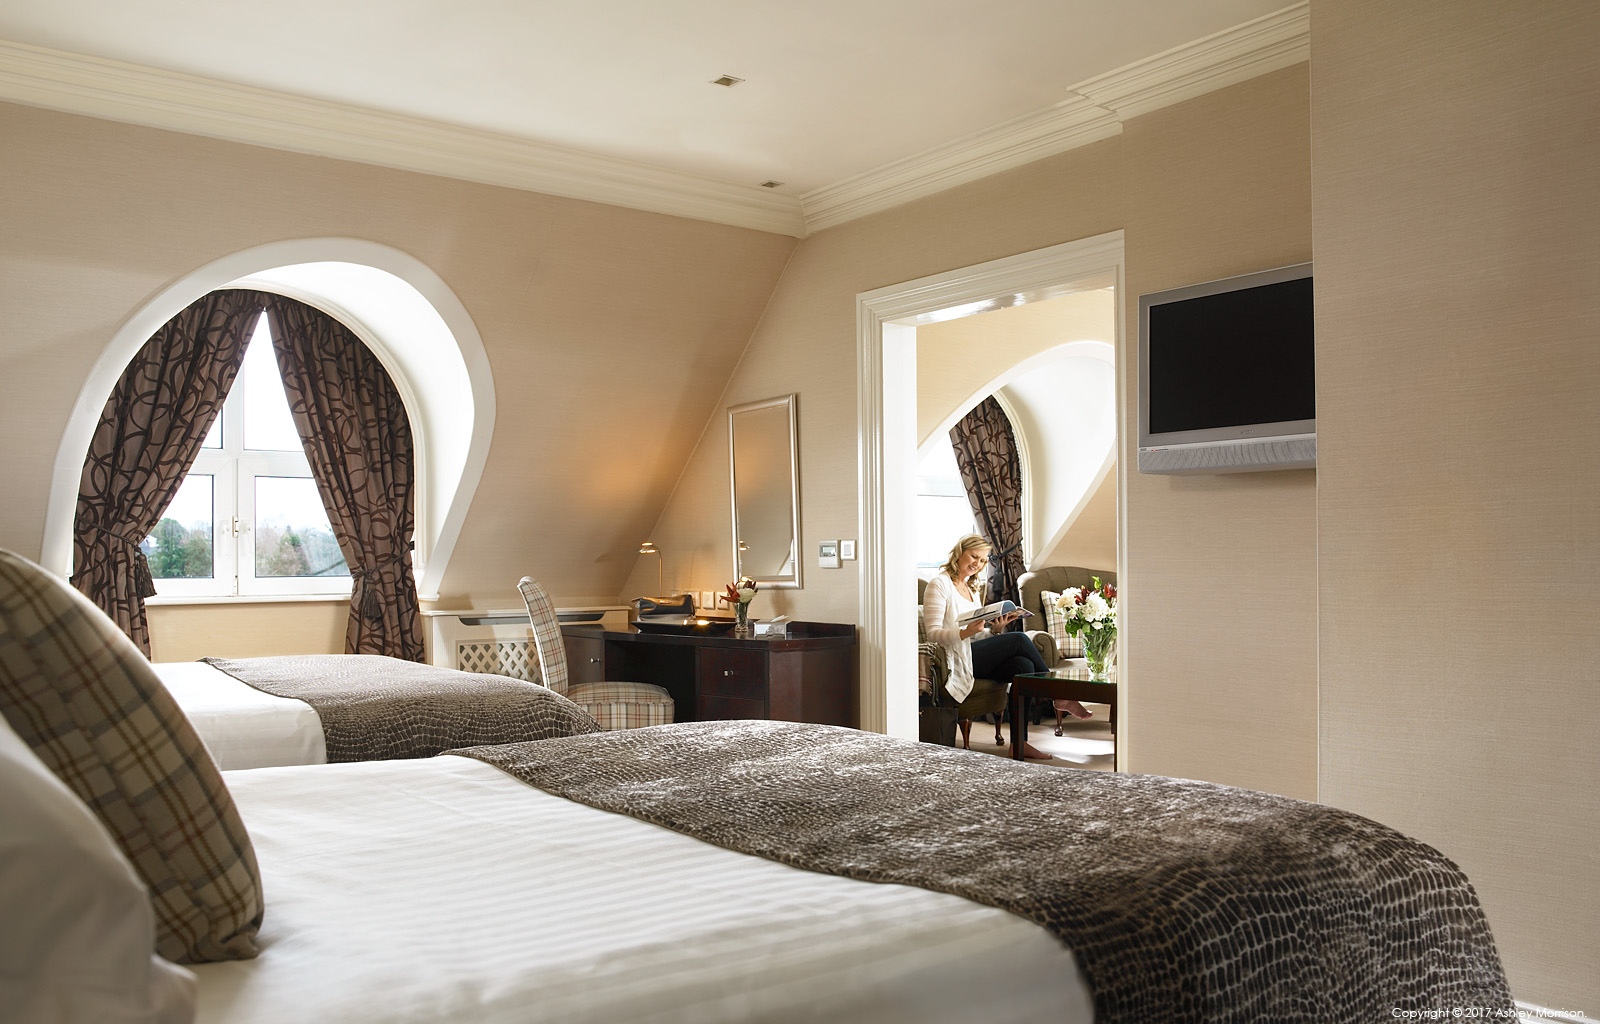 The Killarney Suite at the Killarney Park Hotel in the Irish County of Kerry.